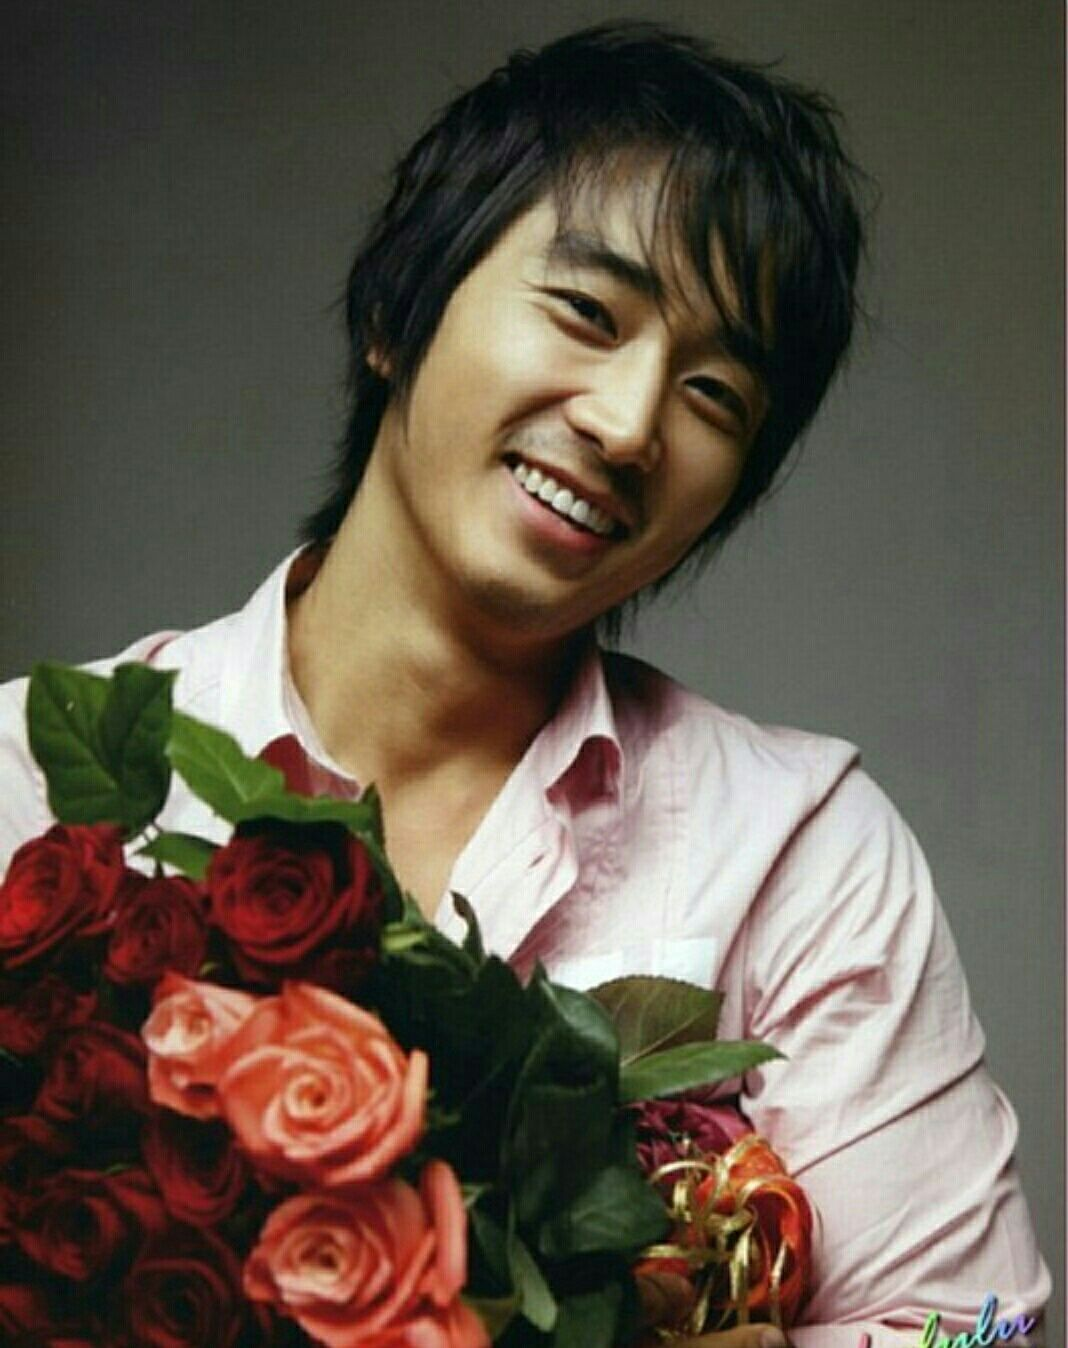 Pin by Reborn King on SSH flowers Song seung heon, Songs